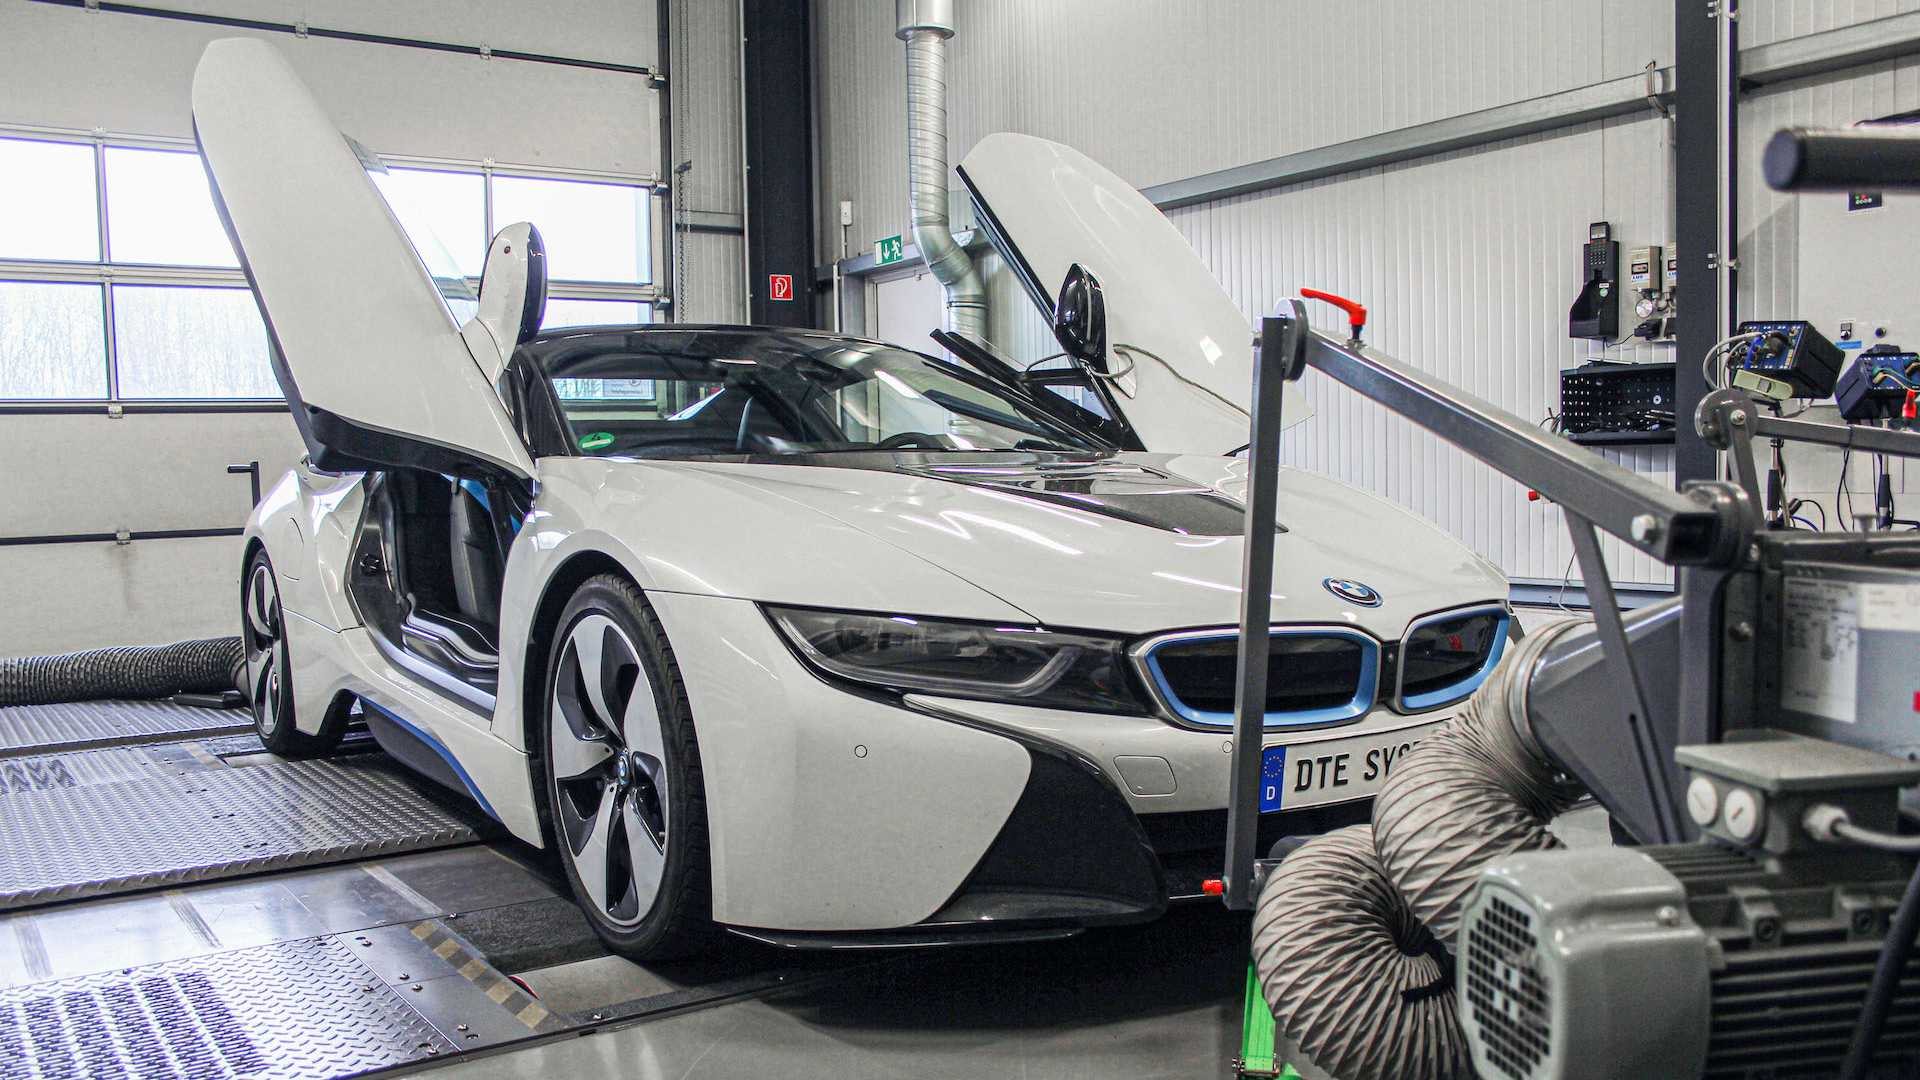 bmw i8 tuned by dte systems5